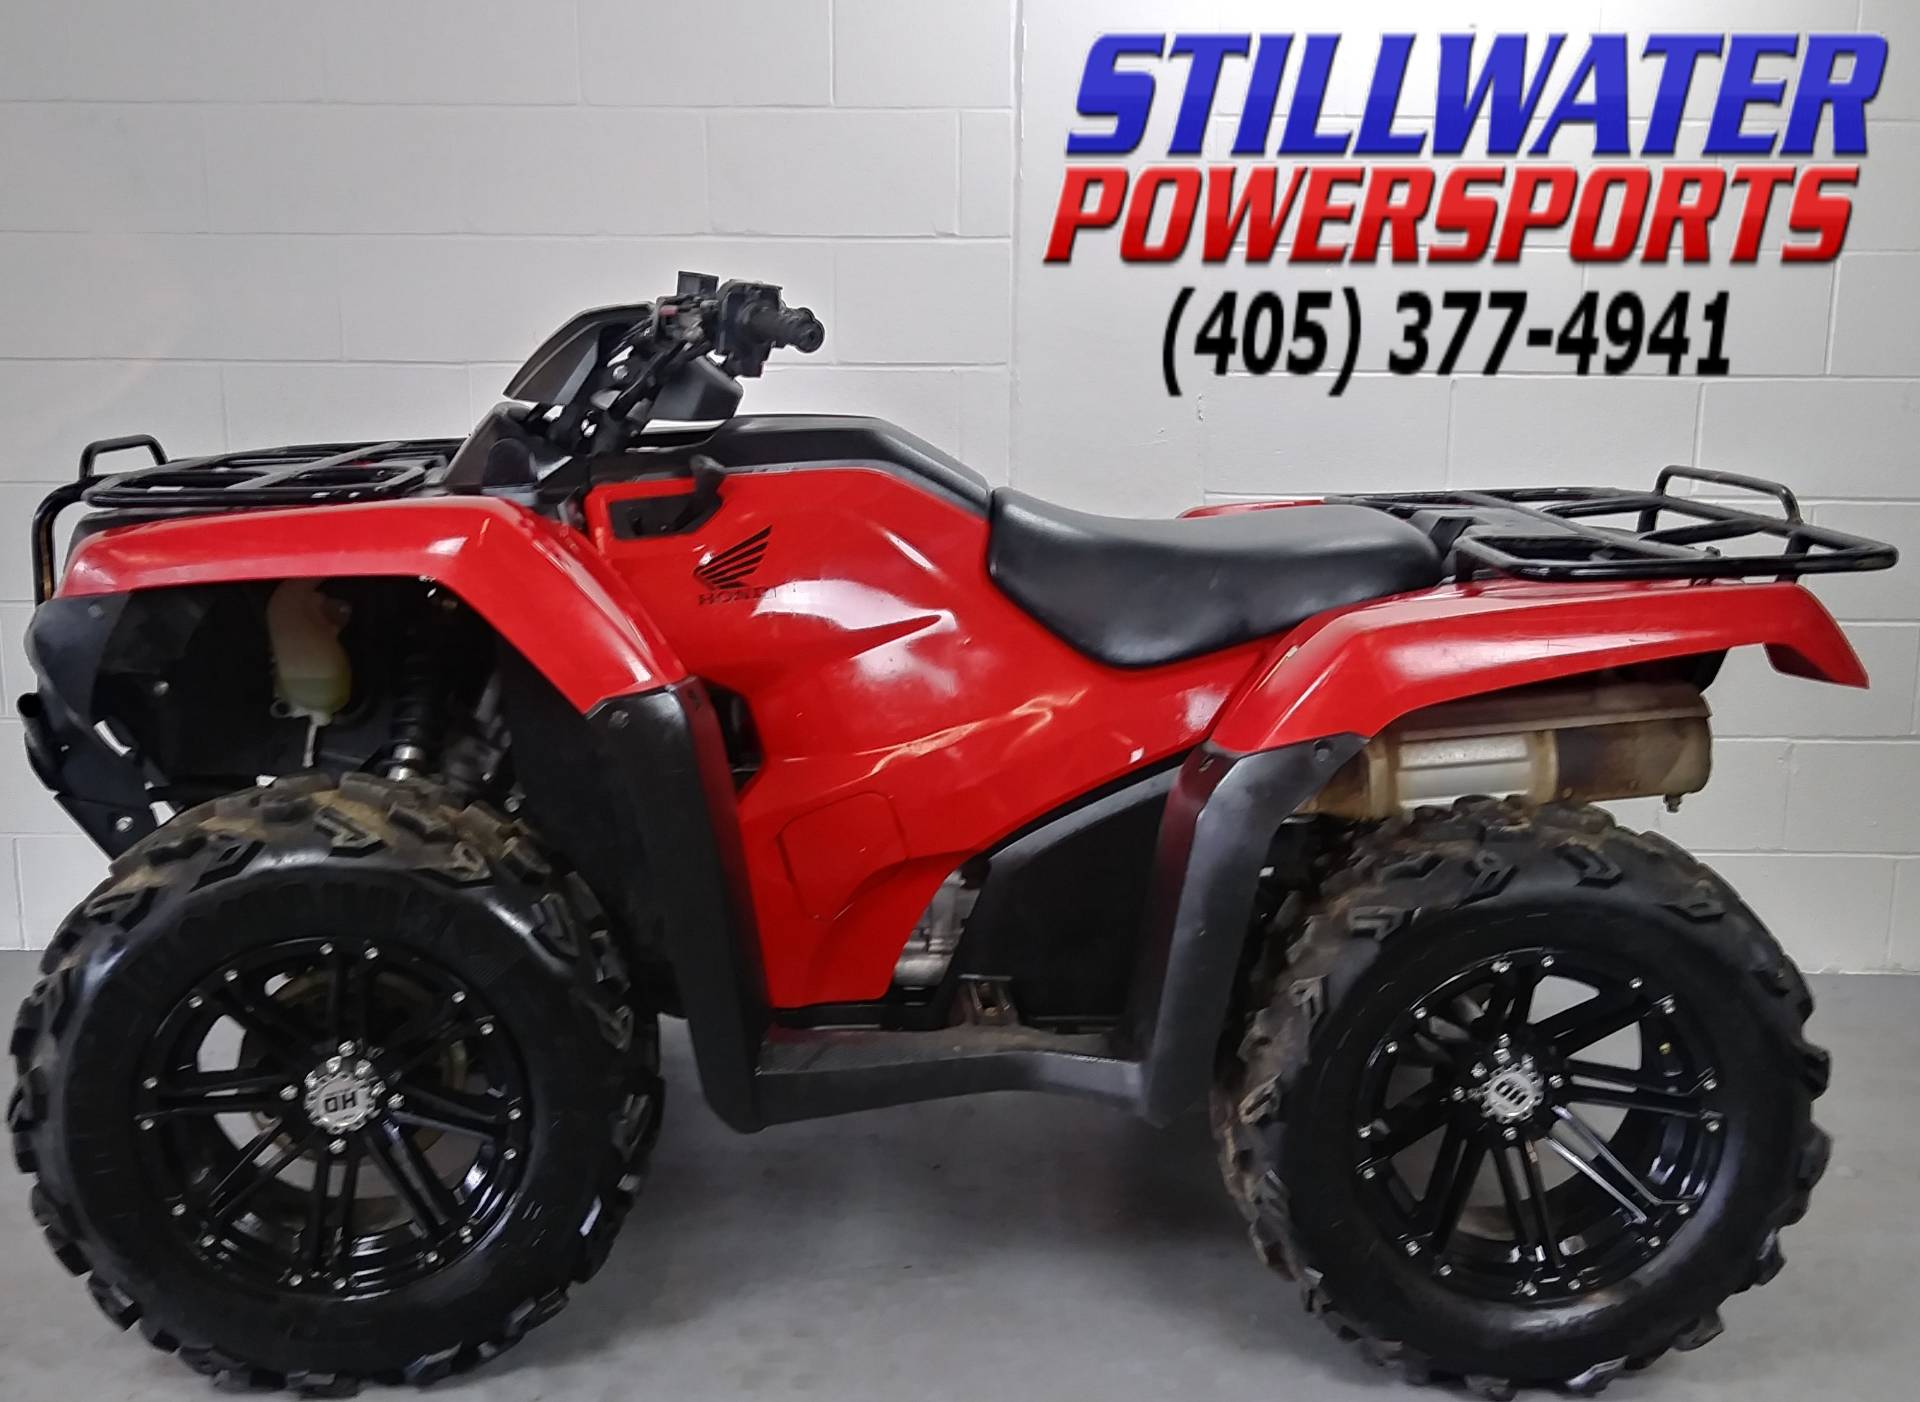 2015 Honda Rancher in Stillwater, Oklahoma - Photo 5